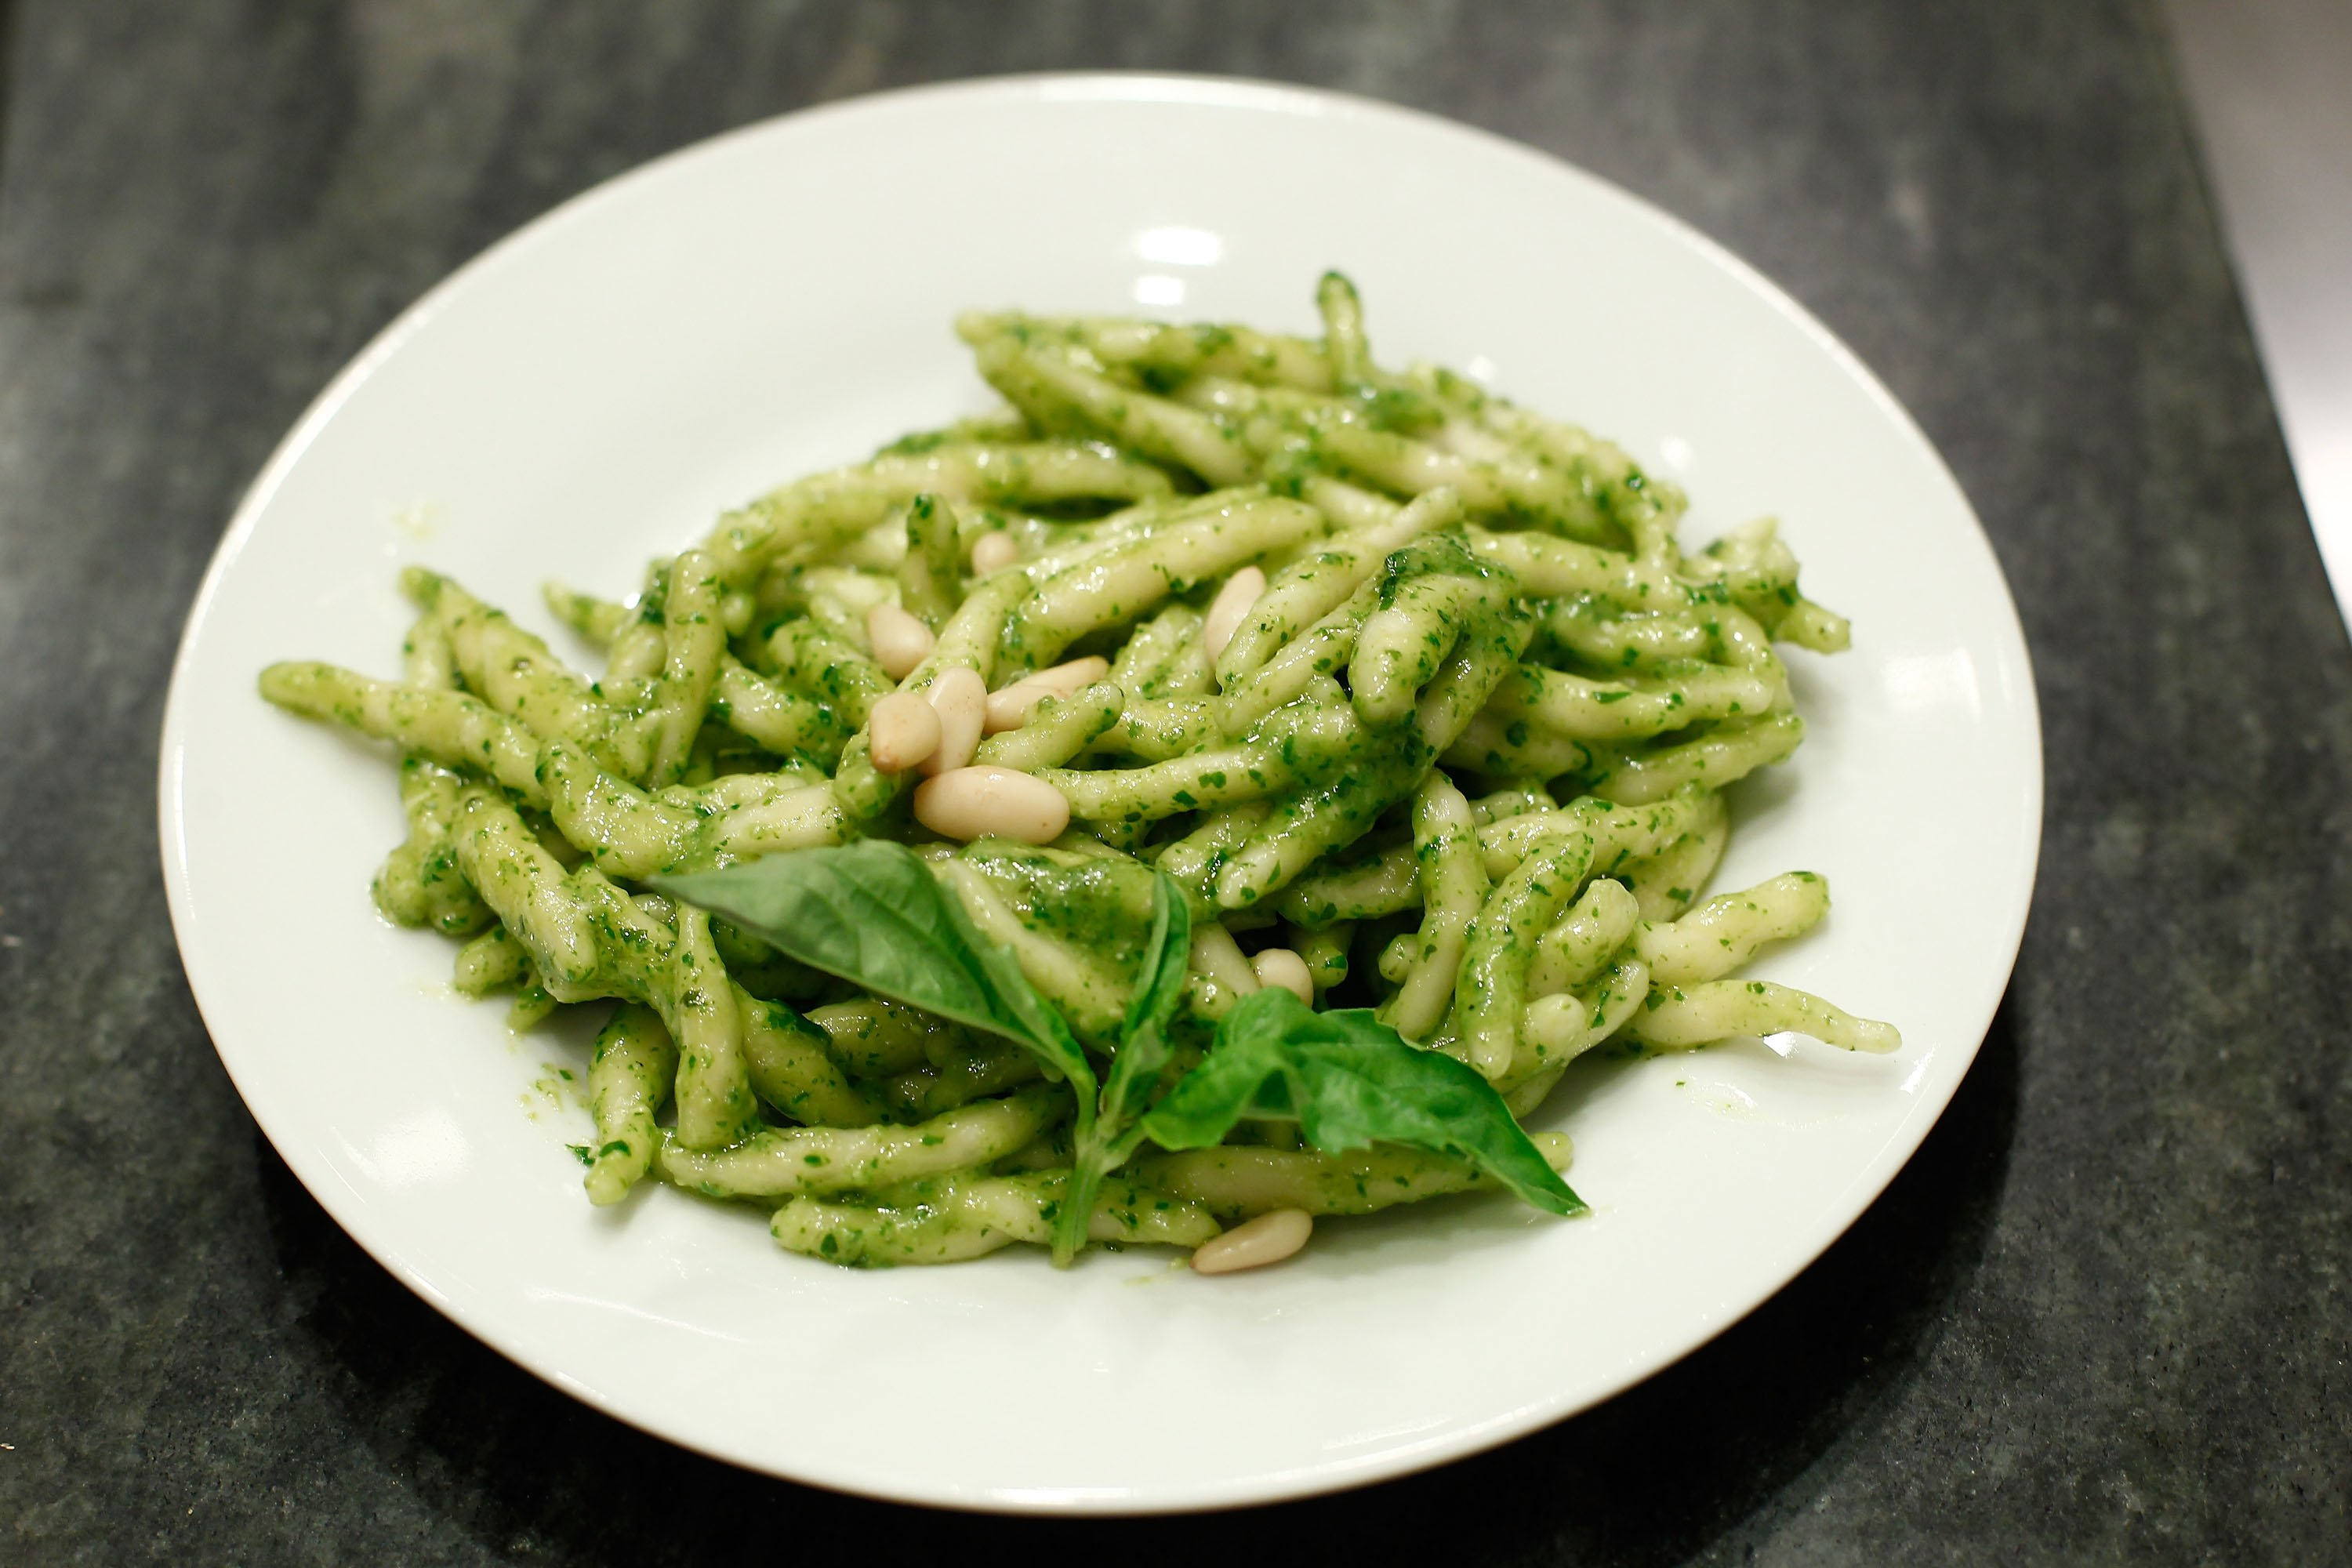 A plate of pasta with pesto